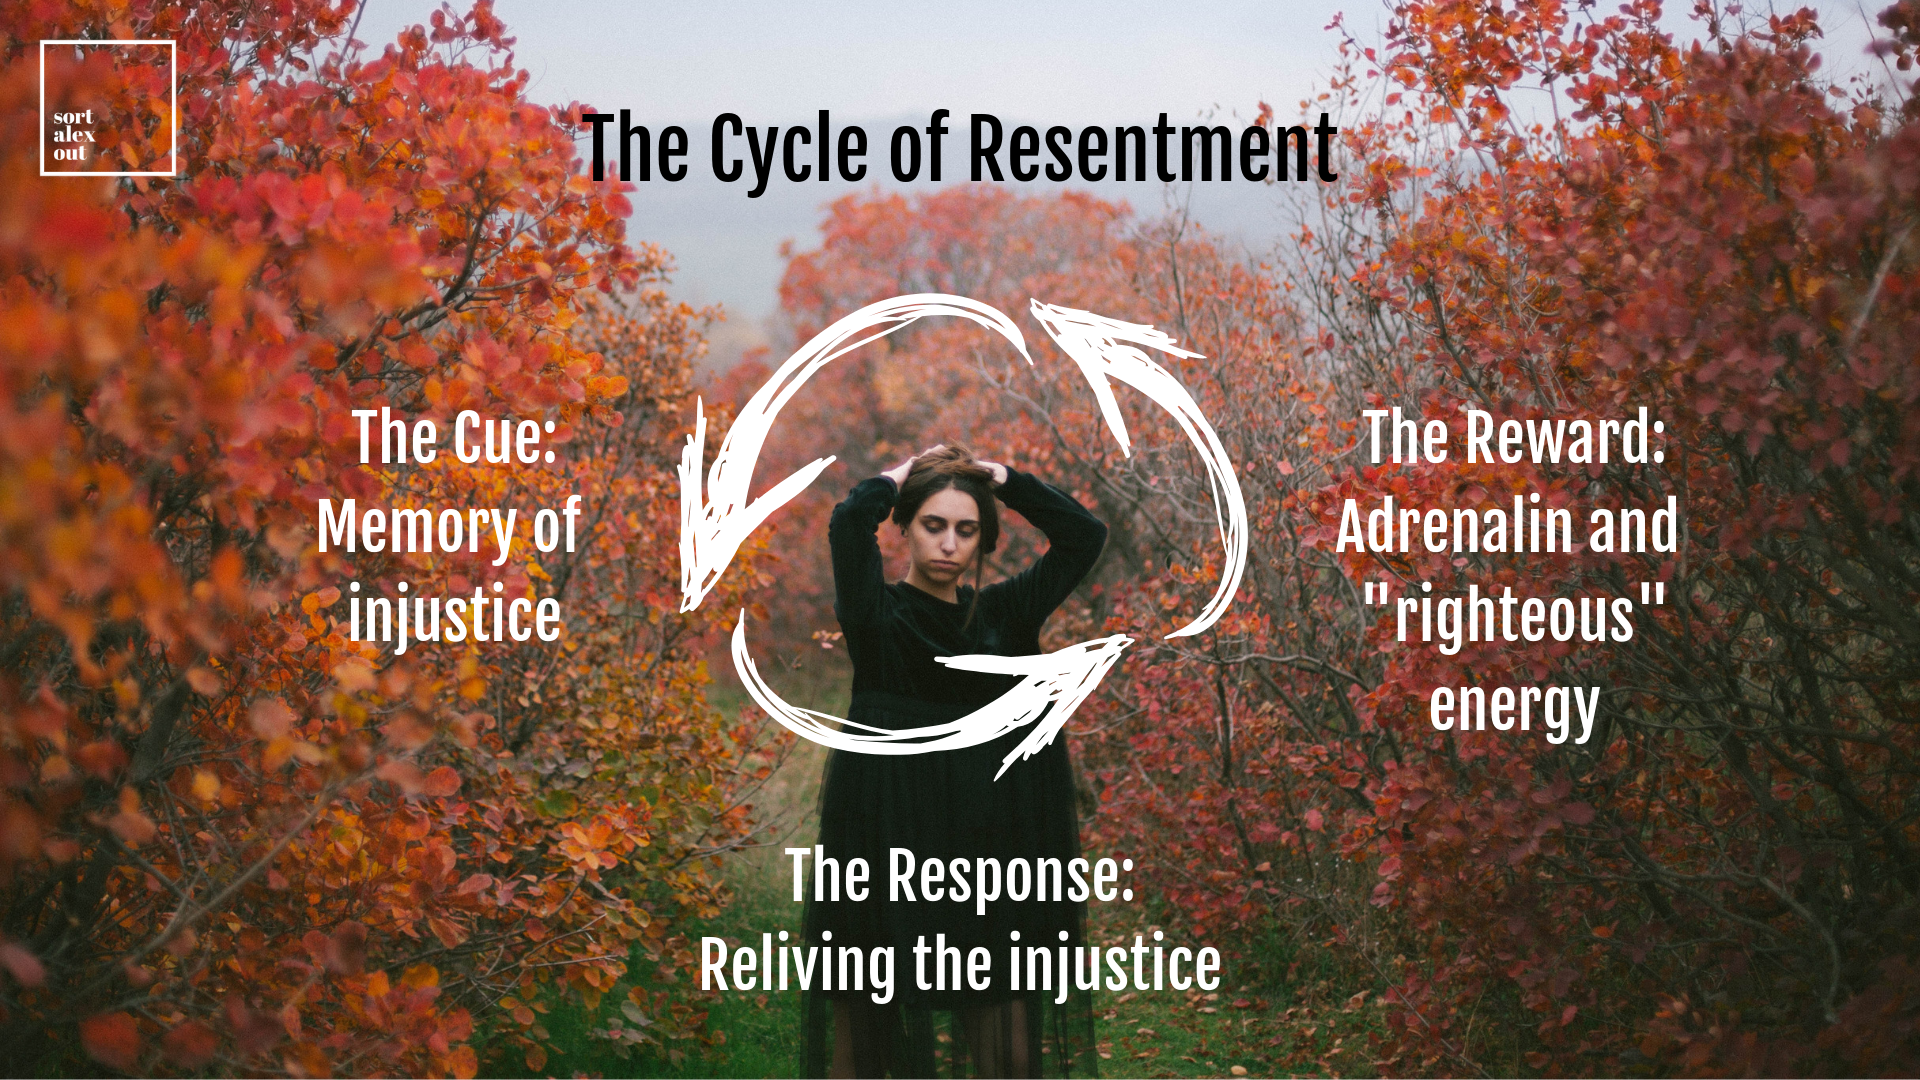 cycle of resentment